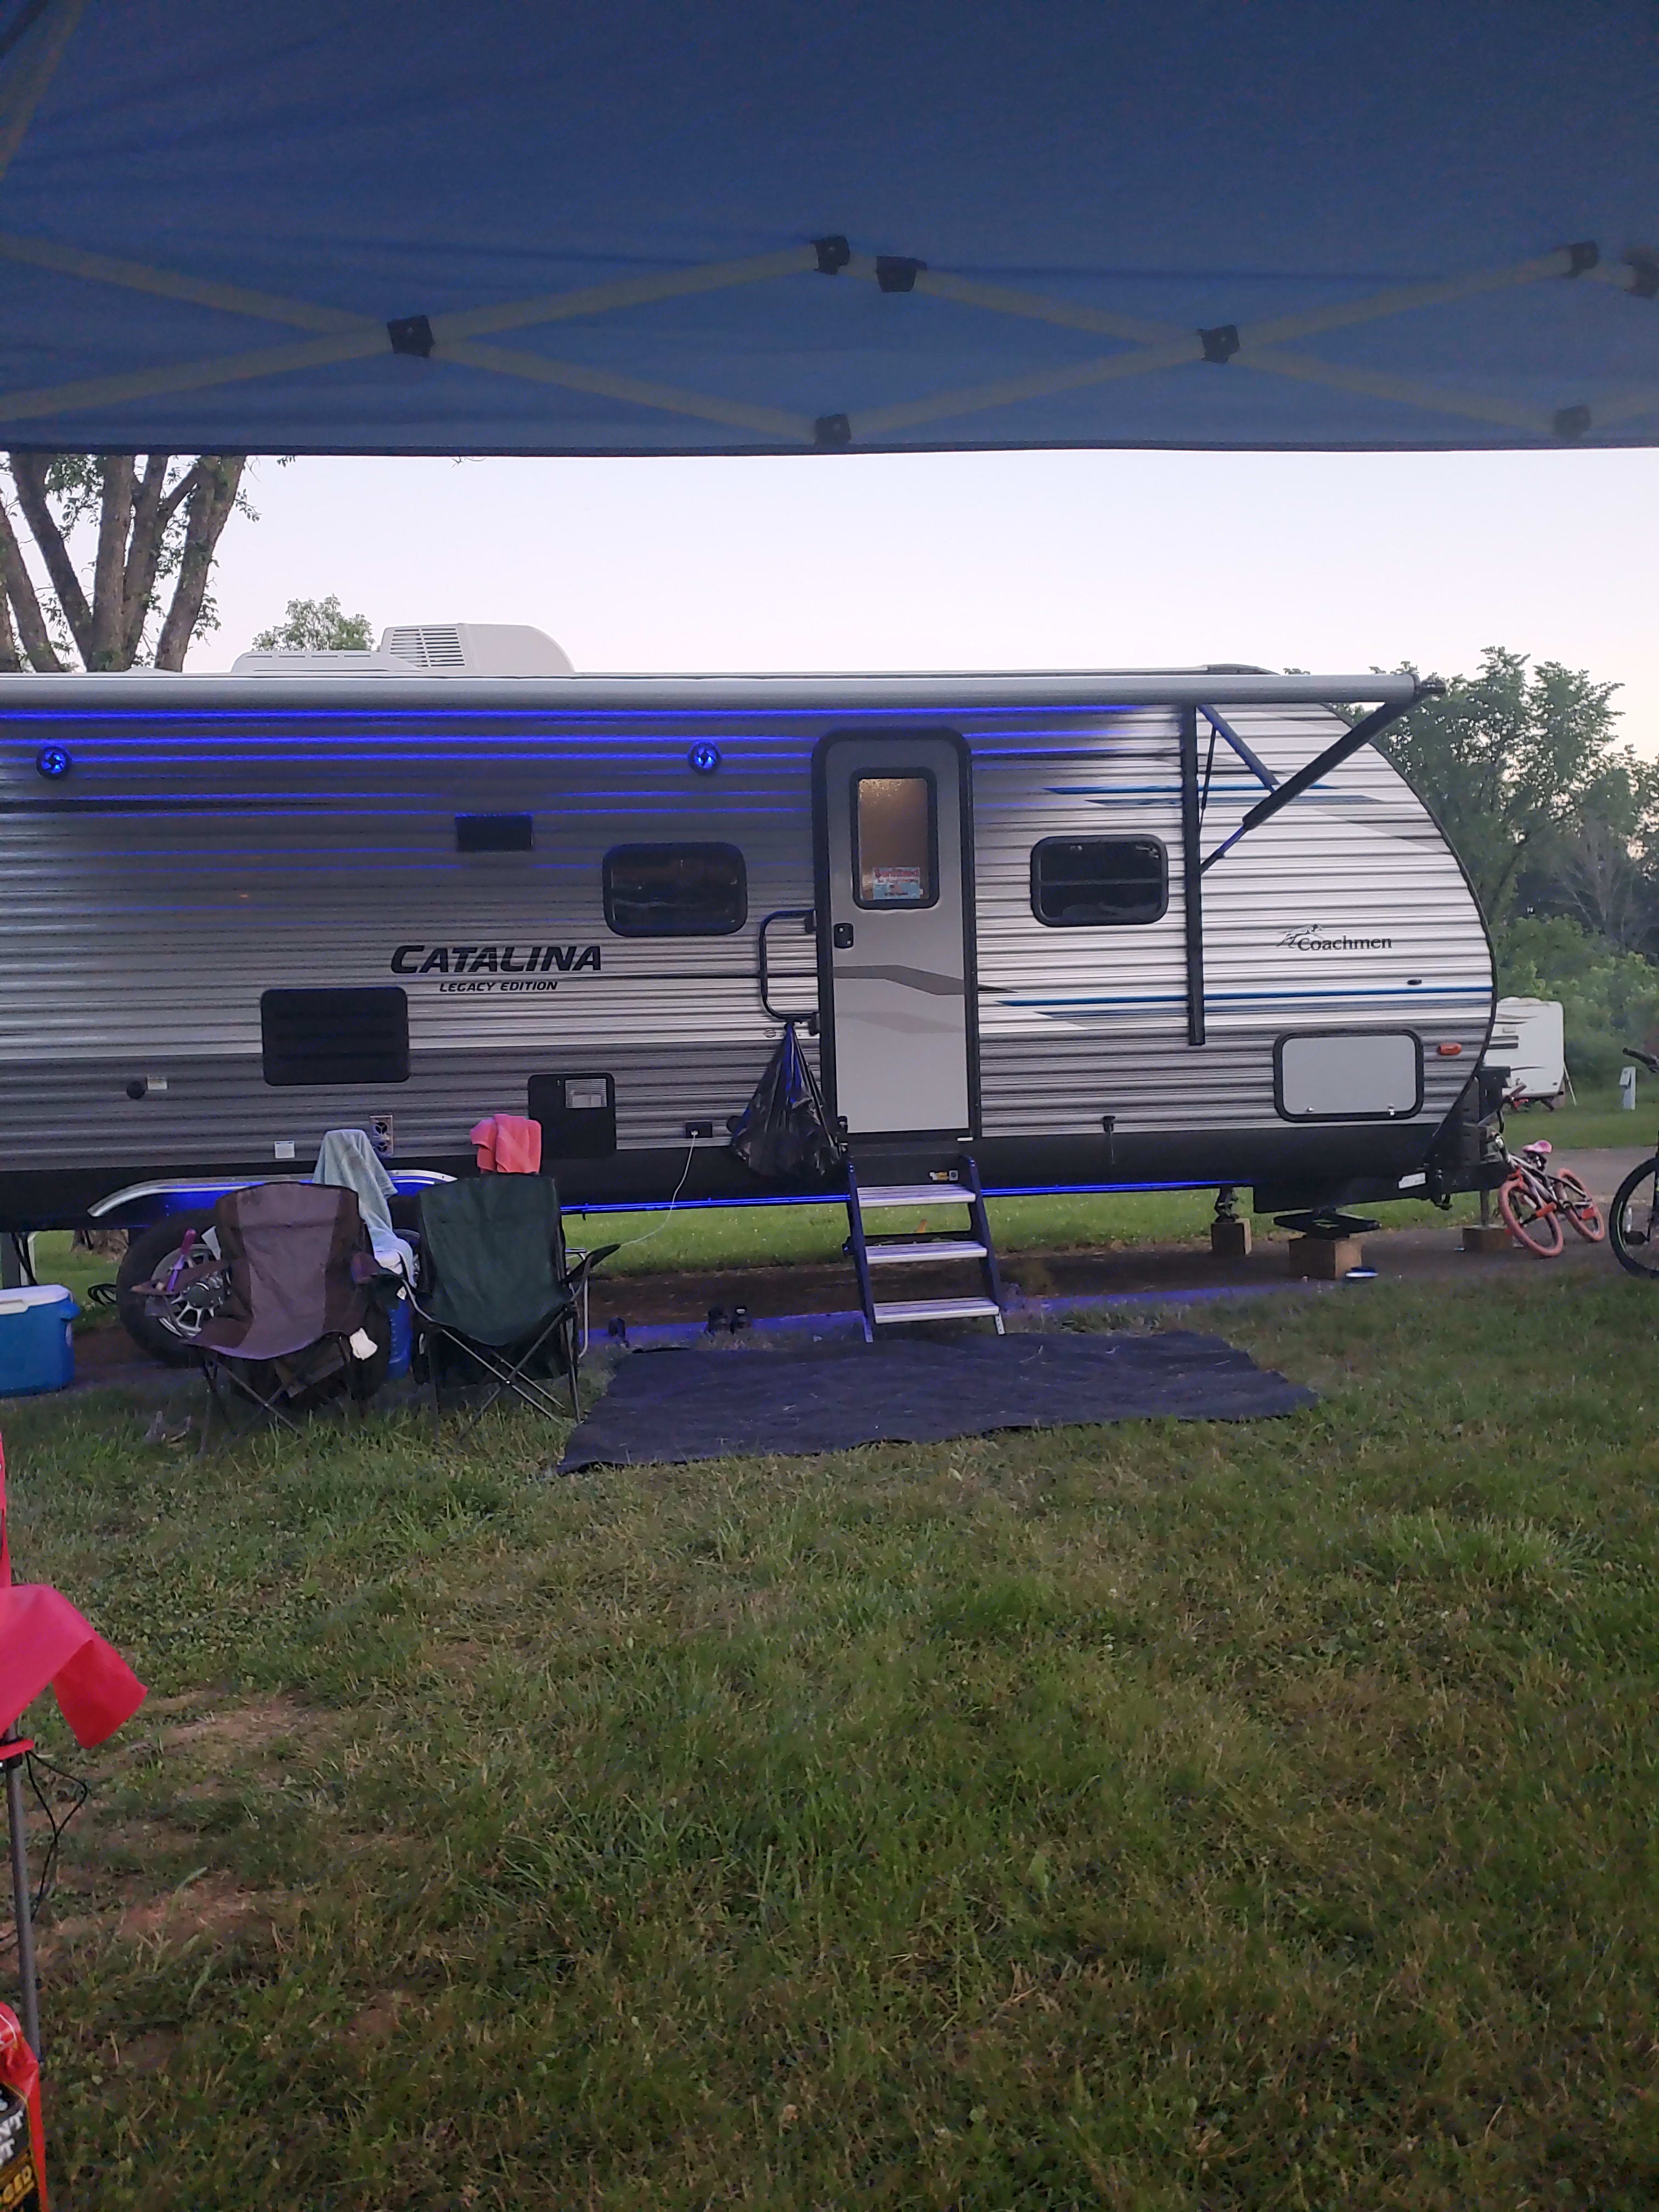 chairs and outdoor carpet included. Coachman Catalina 2020